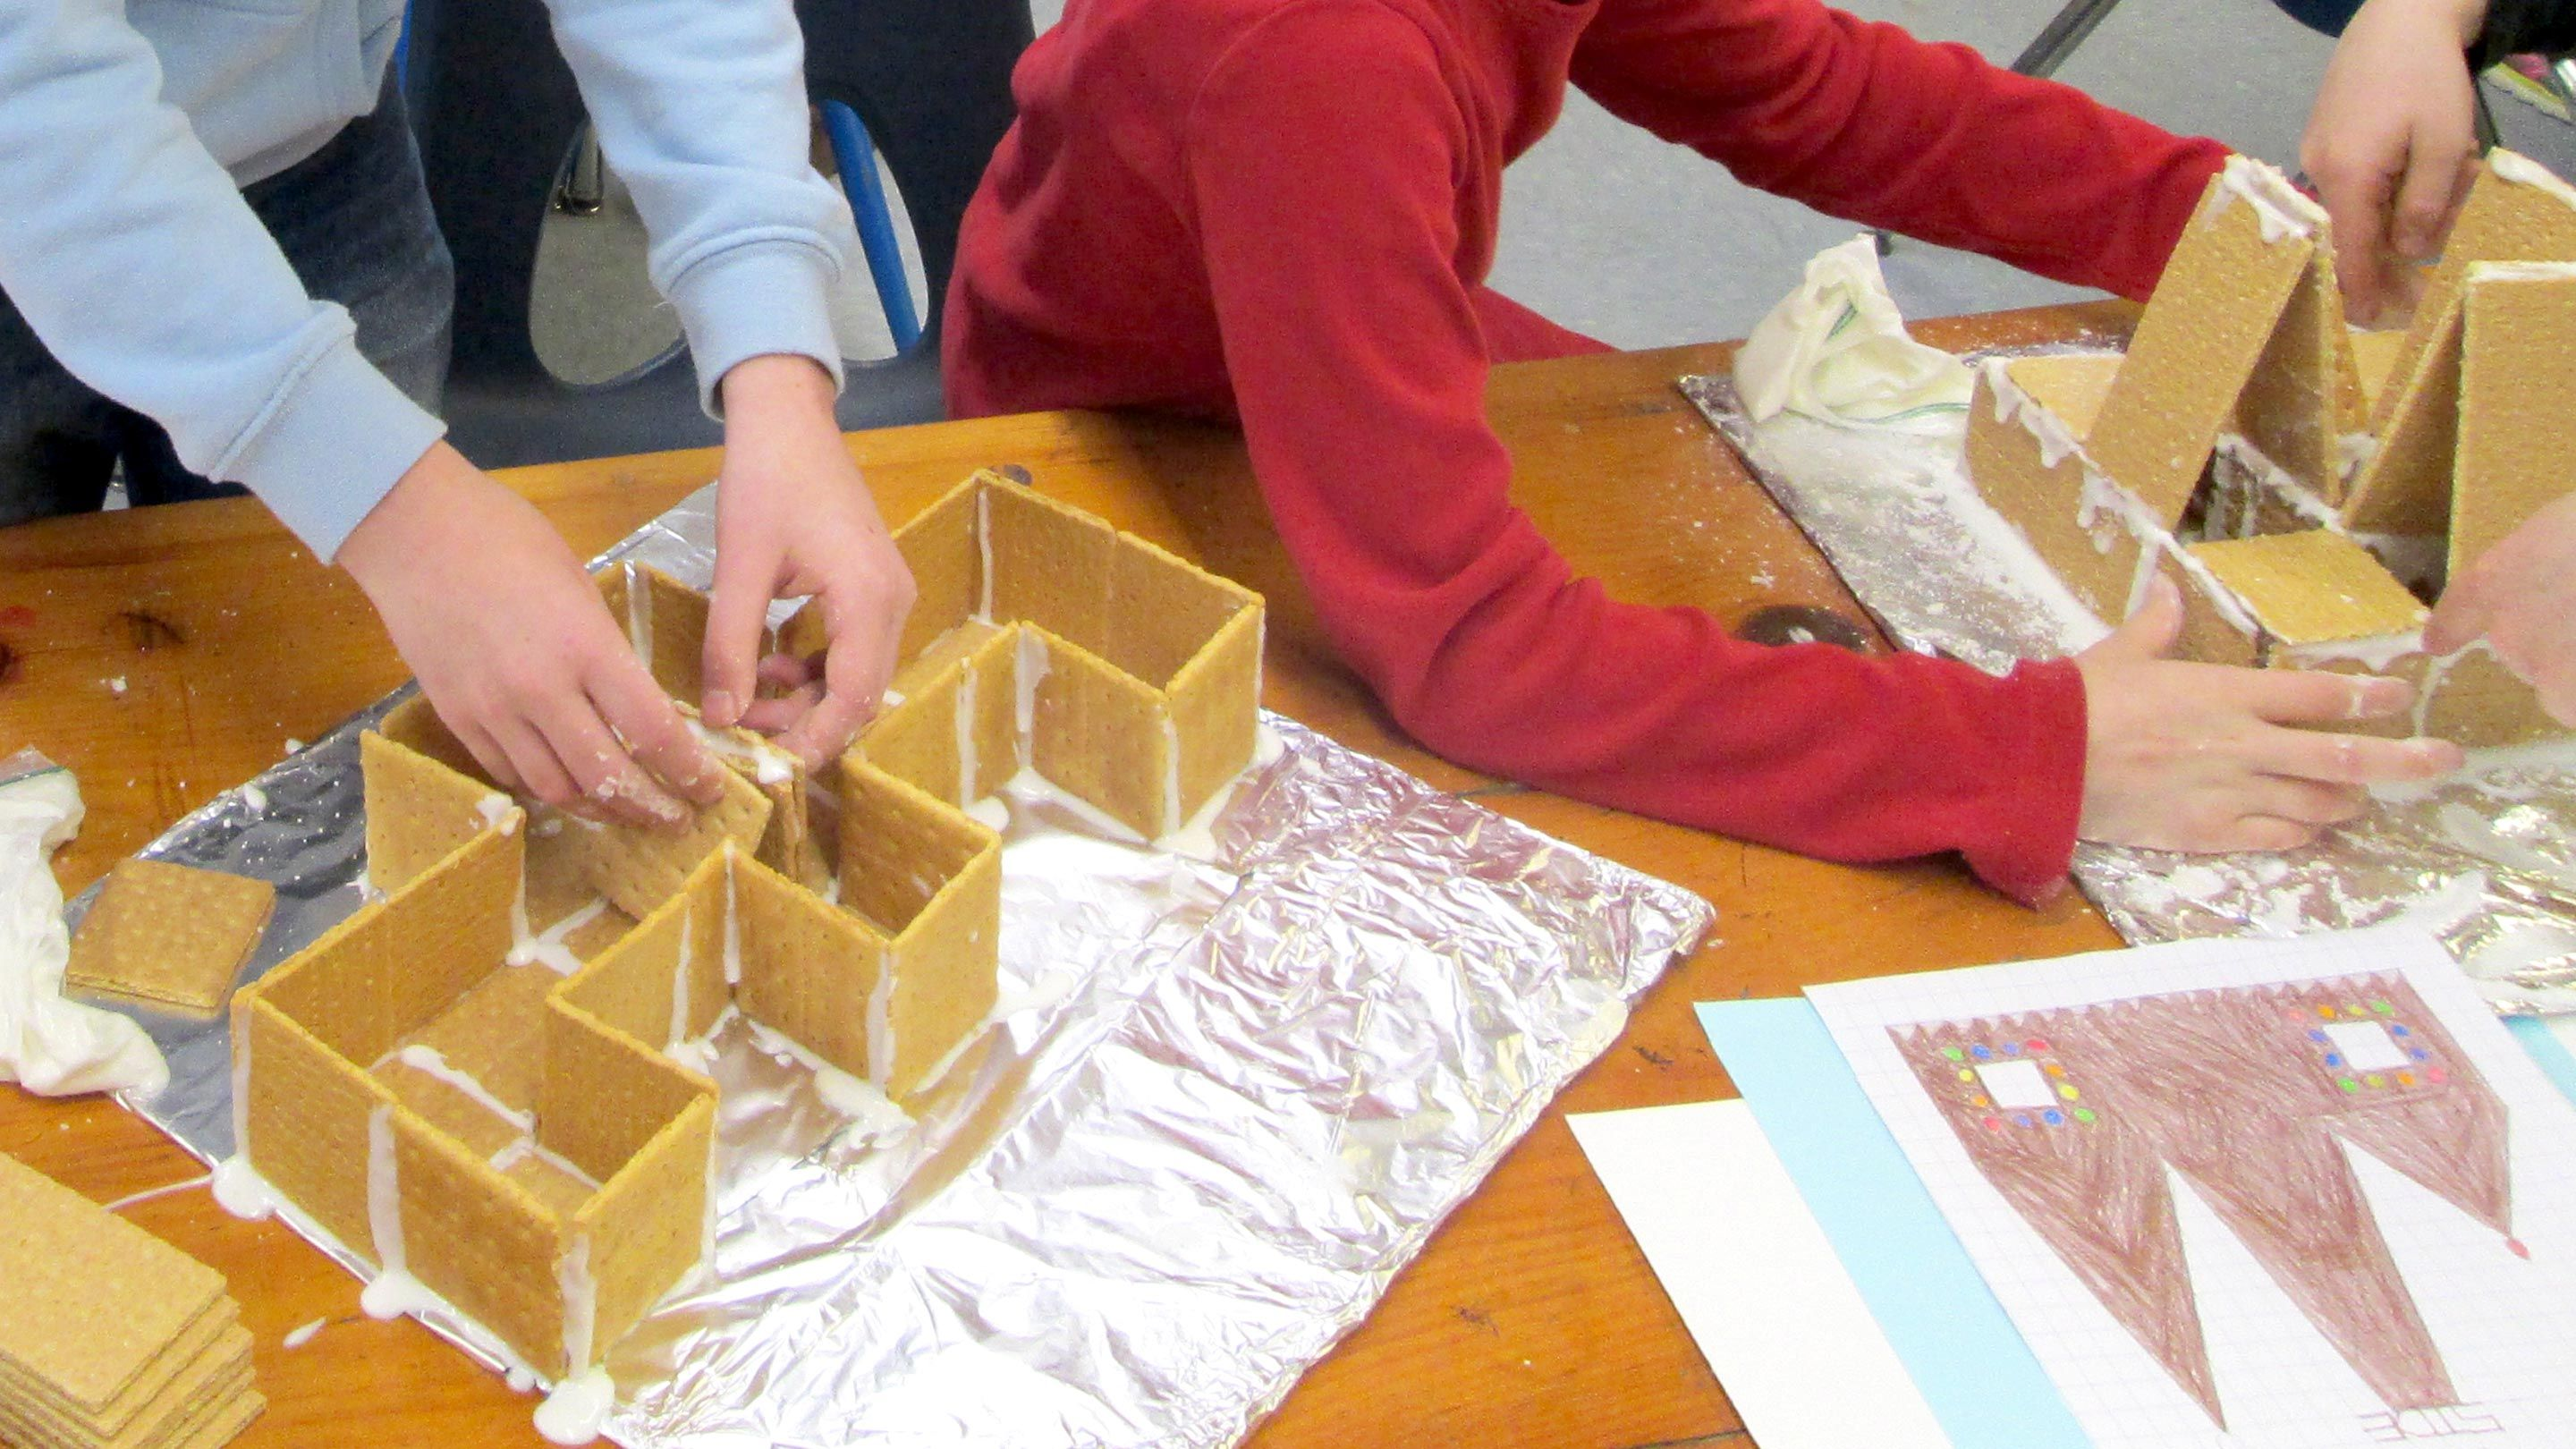 Kids build houses out of graham crackers in the author's class.